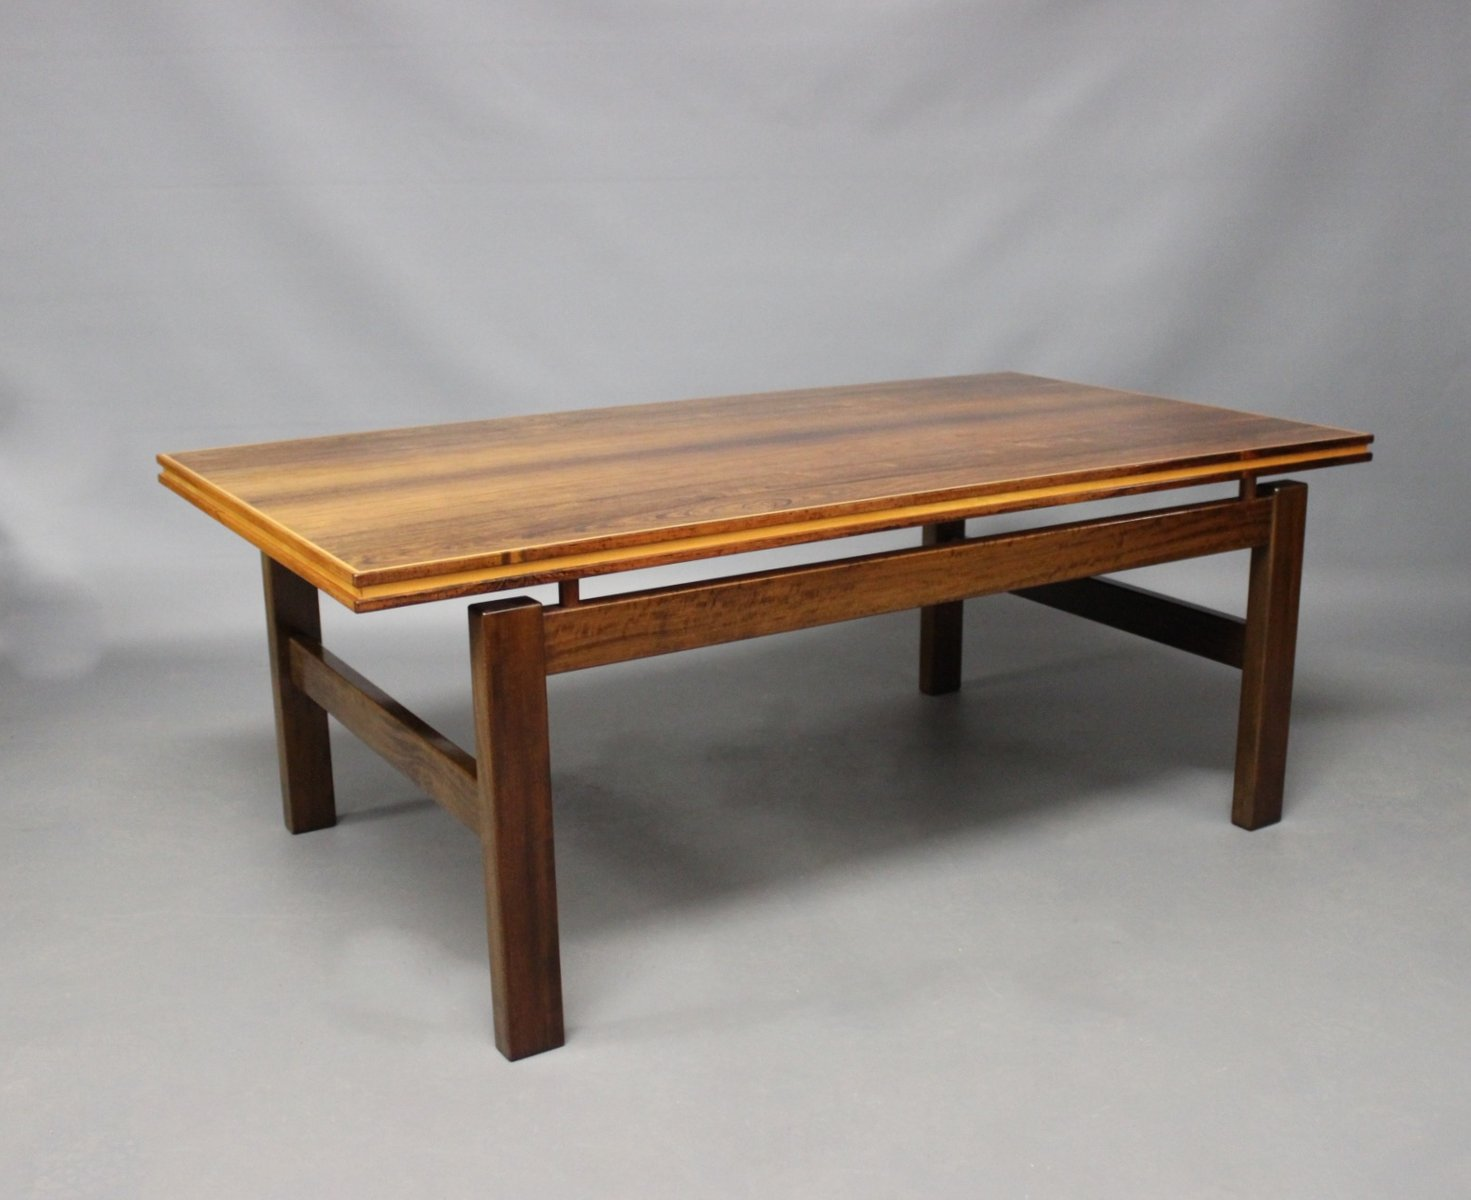 Beautiful Danish Rosewood Coffee Table With Floating Top, 1960s